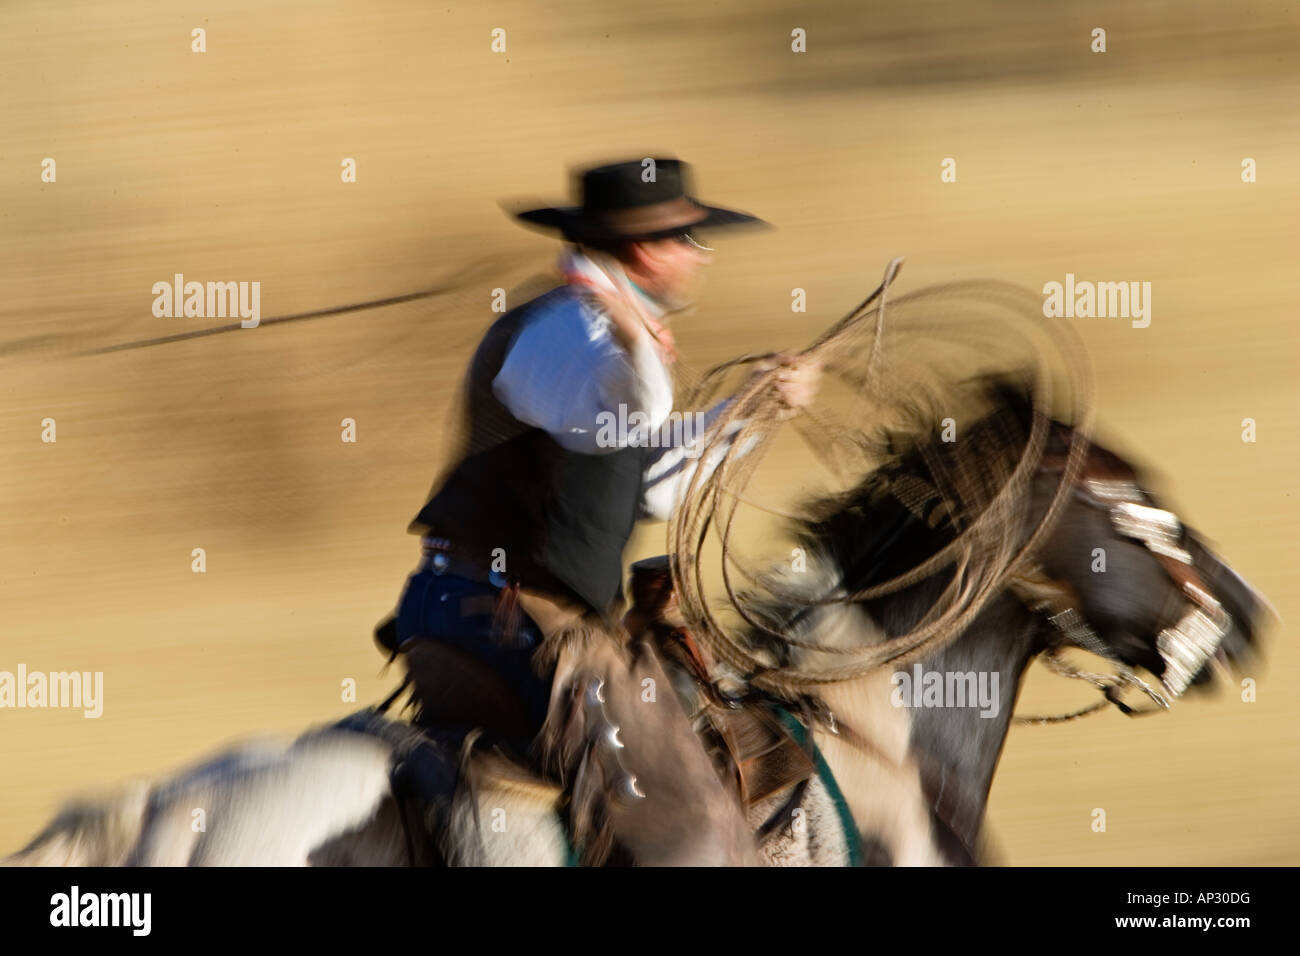 Cowboy riding and throwing lasso wildwest, Oregon USA - Stock Image